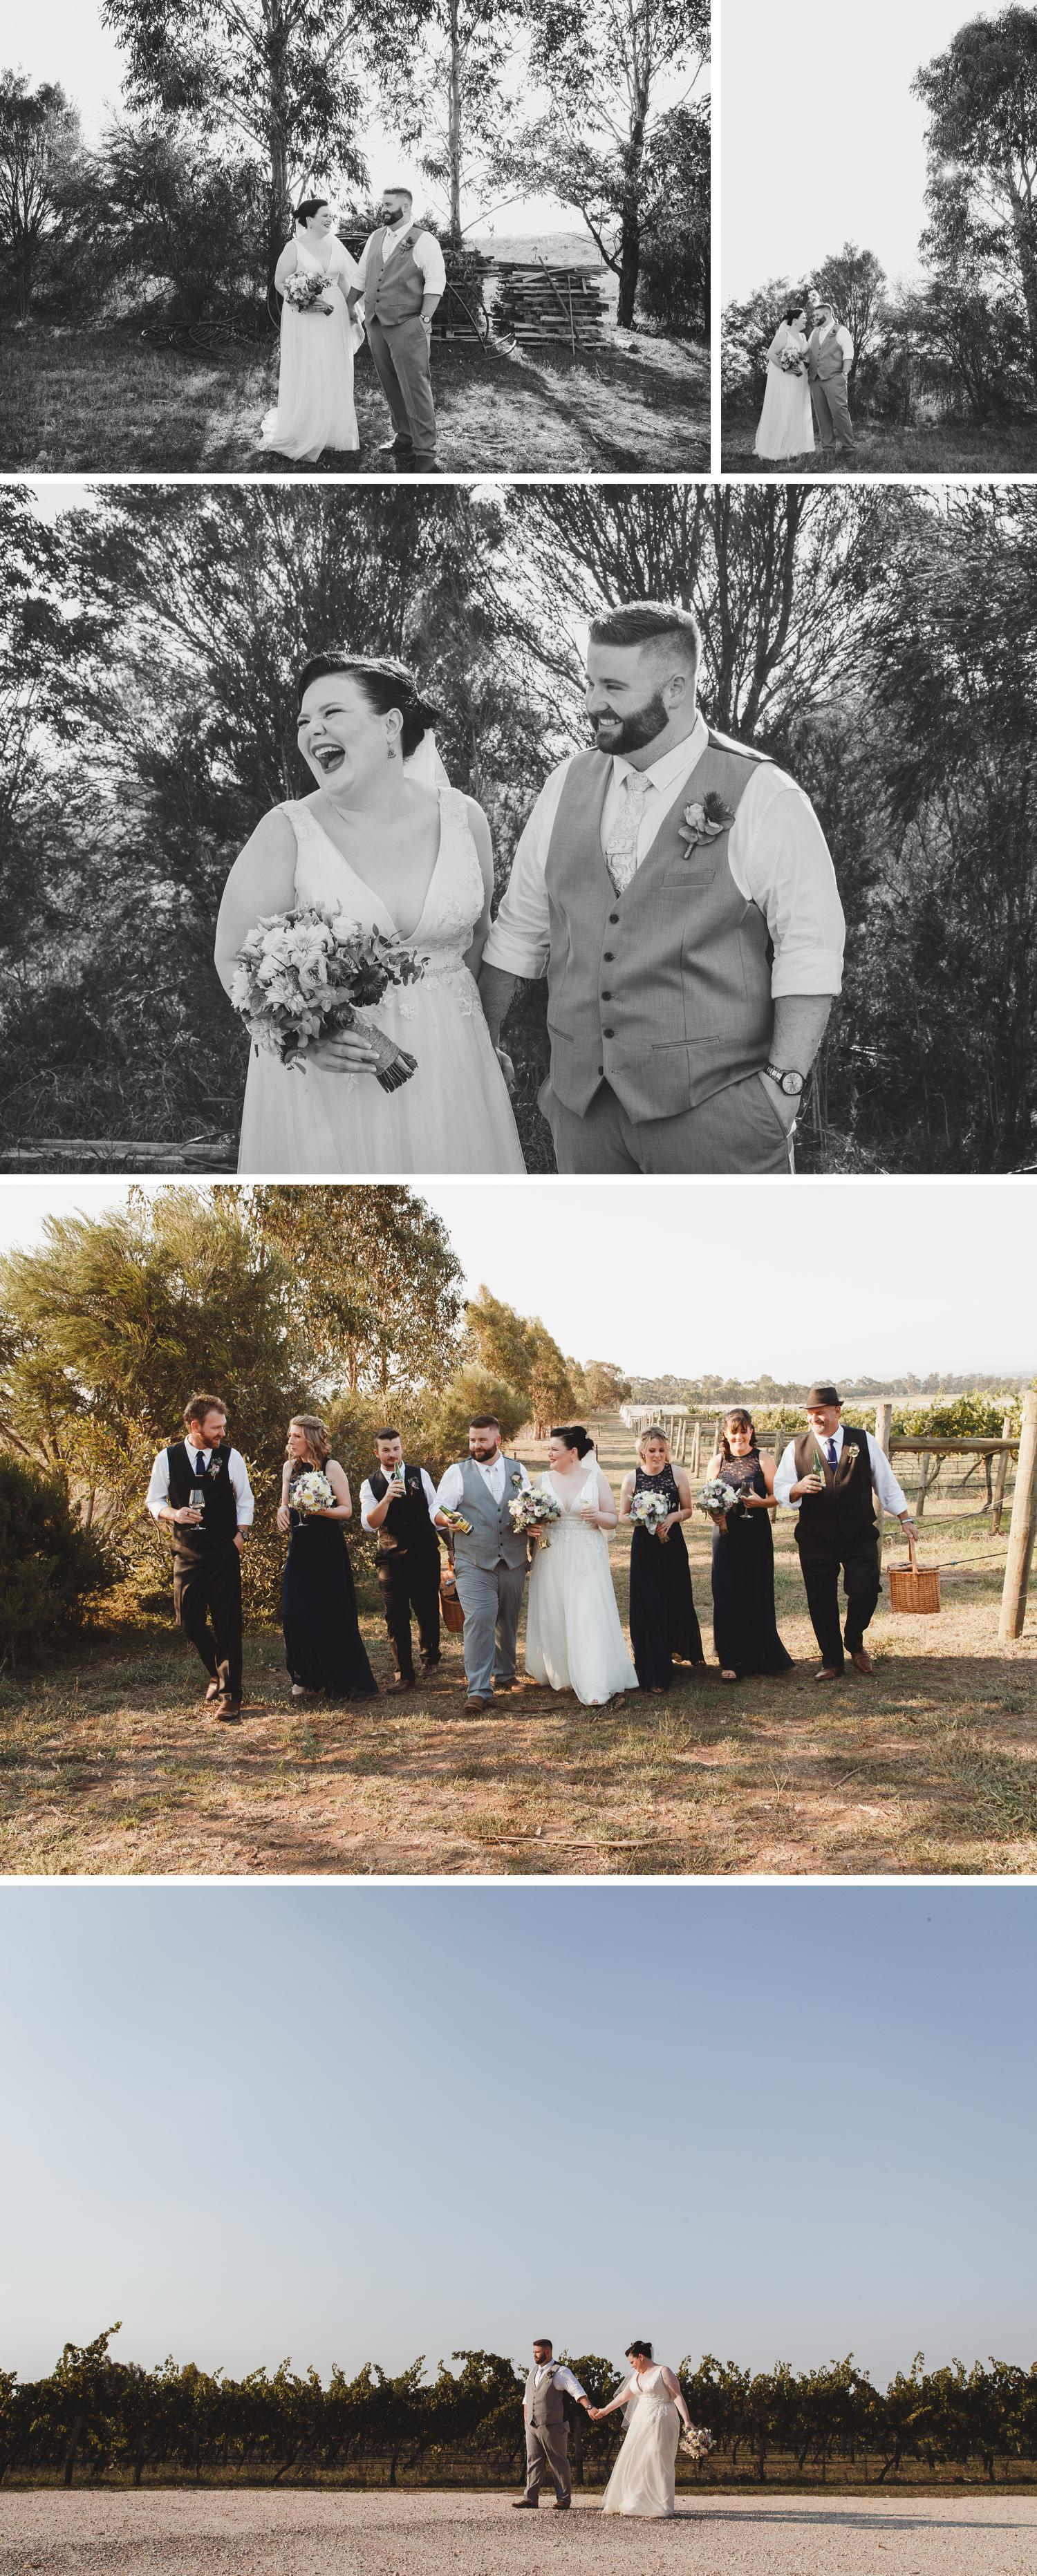 The Vines on Avon Wedding Photo by Danae Studios